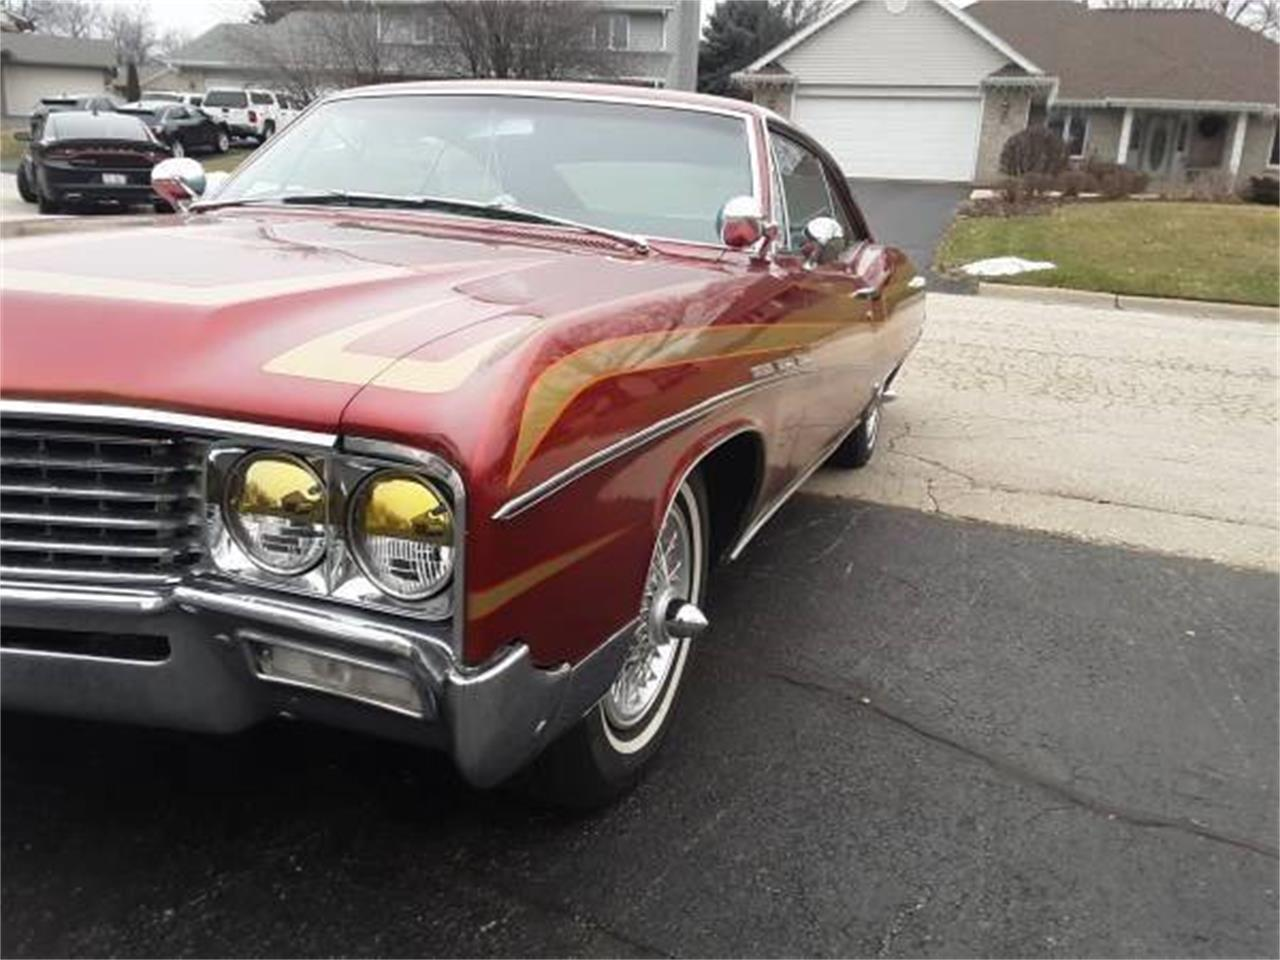 Large Picture of 1967 Buick LeSabre located in New York - $10,500.00 Offered by DP9 Motorsports - PSAL